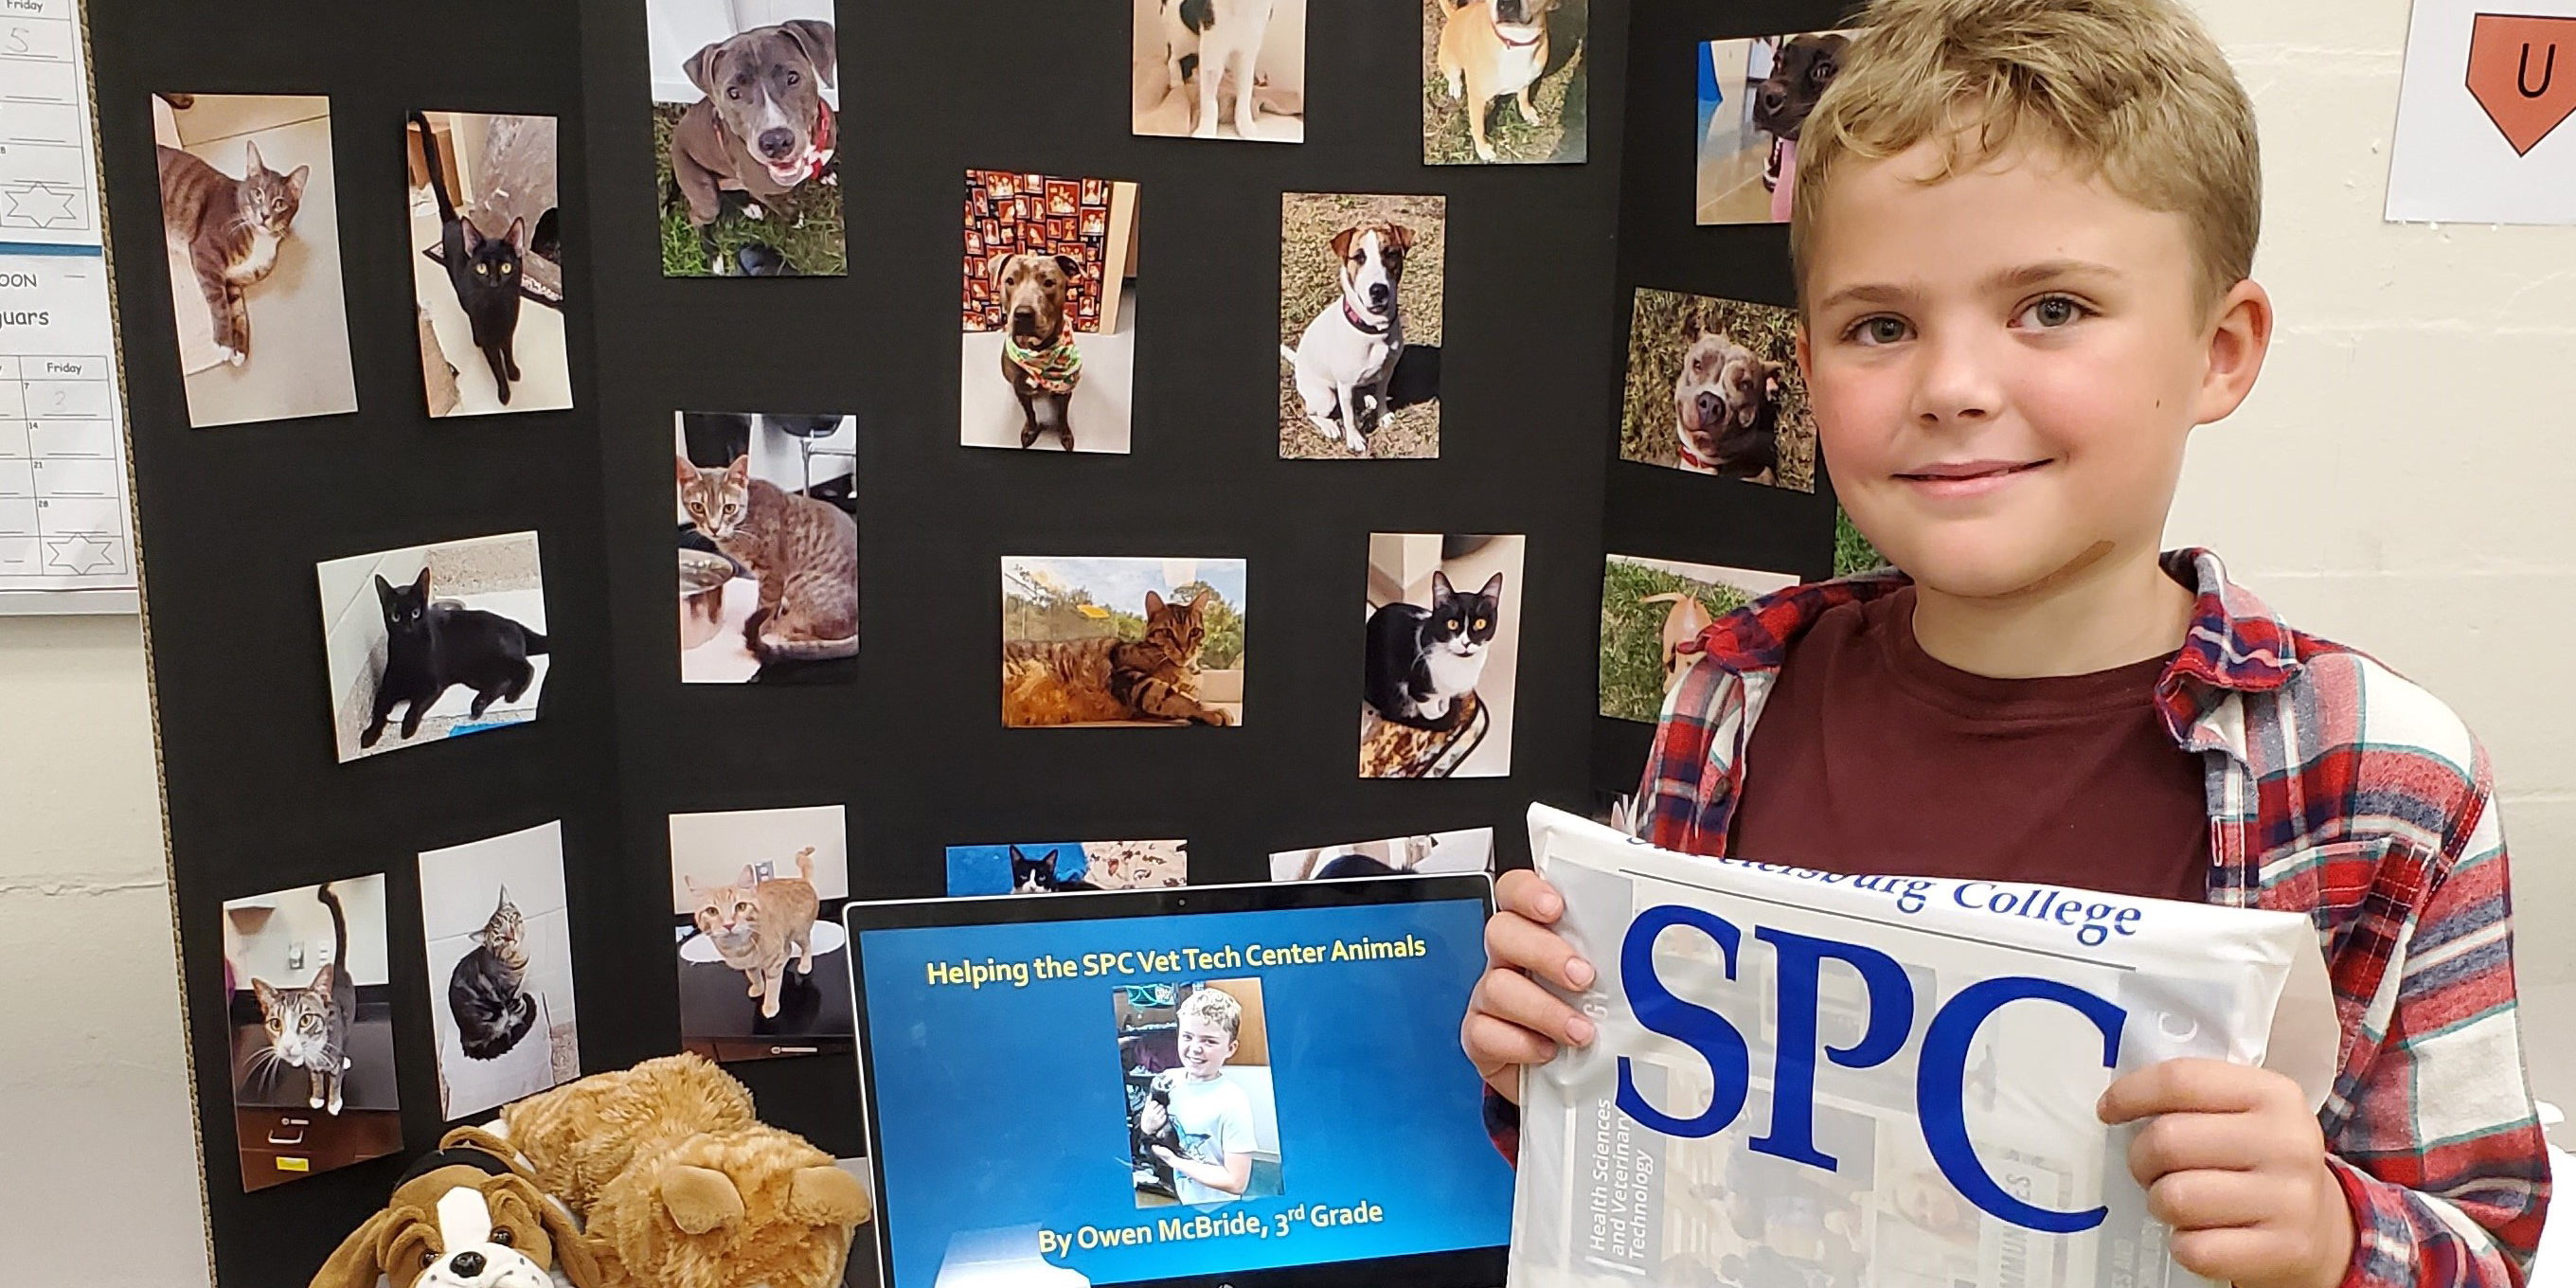 A small blonde boy holds an SPC bag in front of a presentation covered in pictures of animals up for adoption.